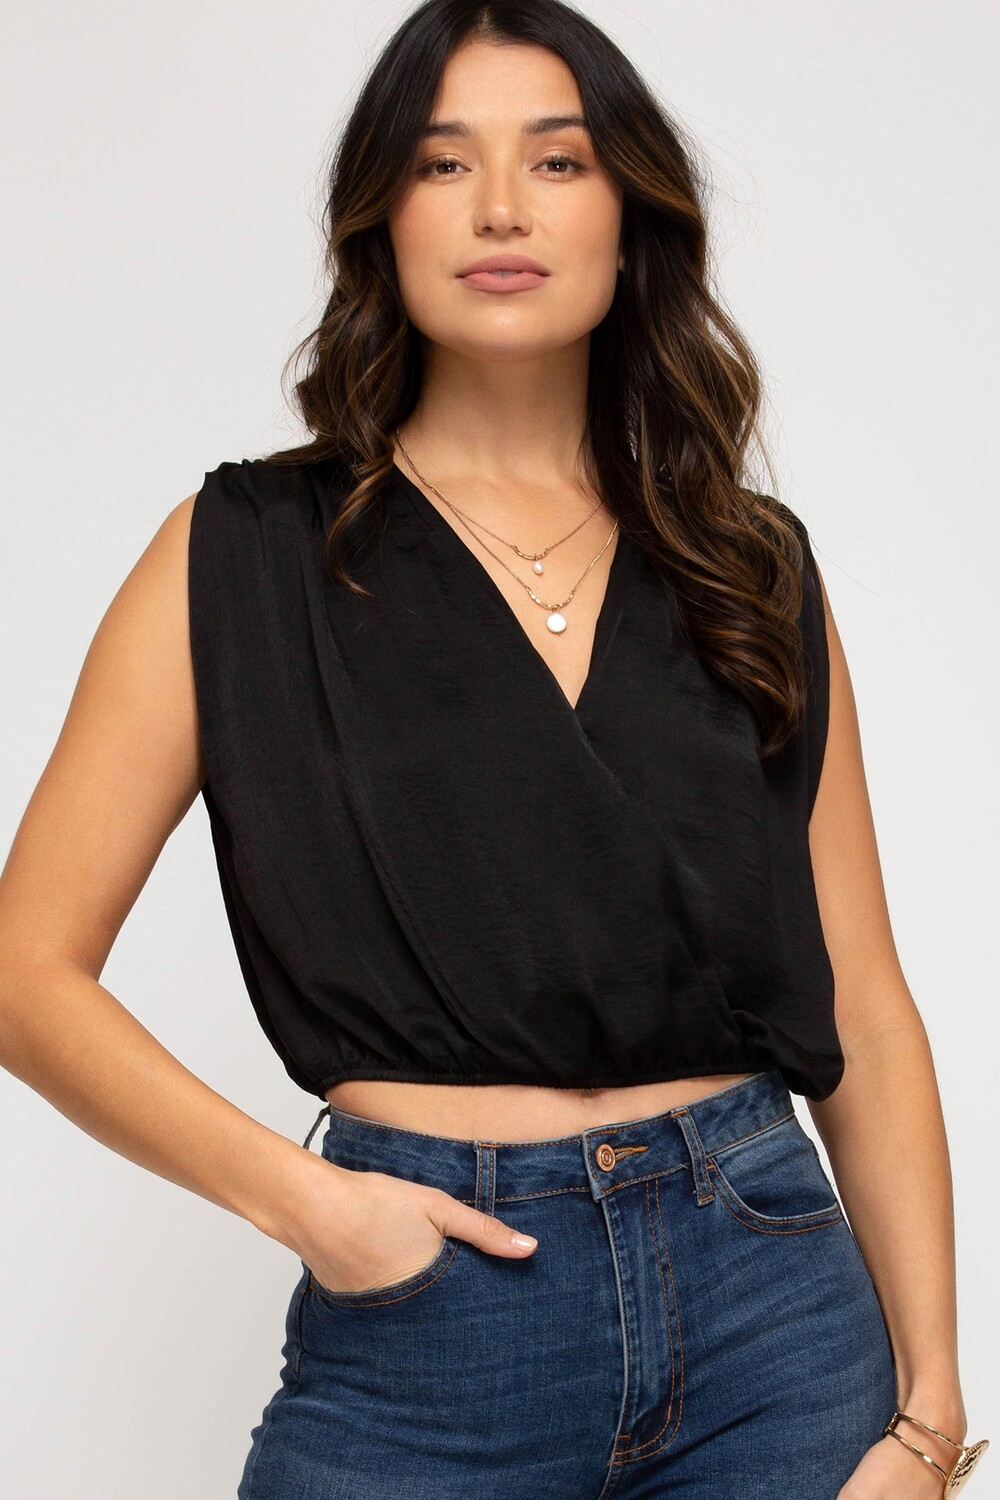 She & Sky: Black Padded Shoulder Top